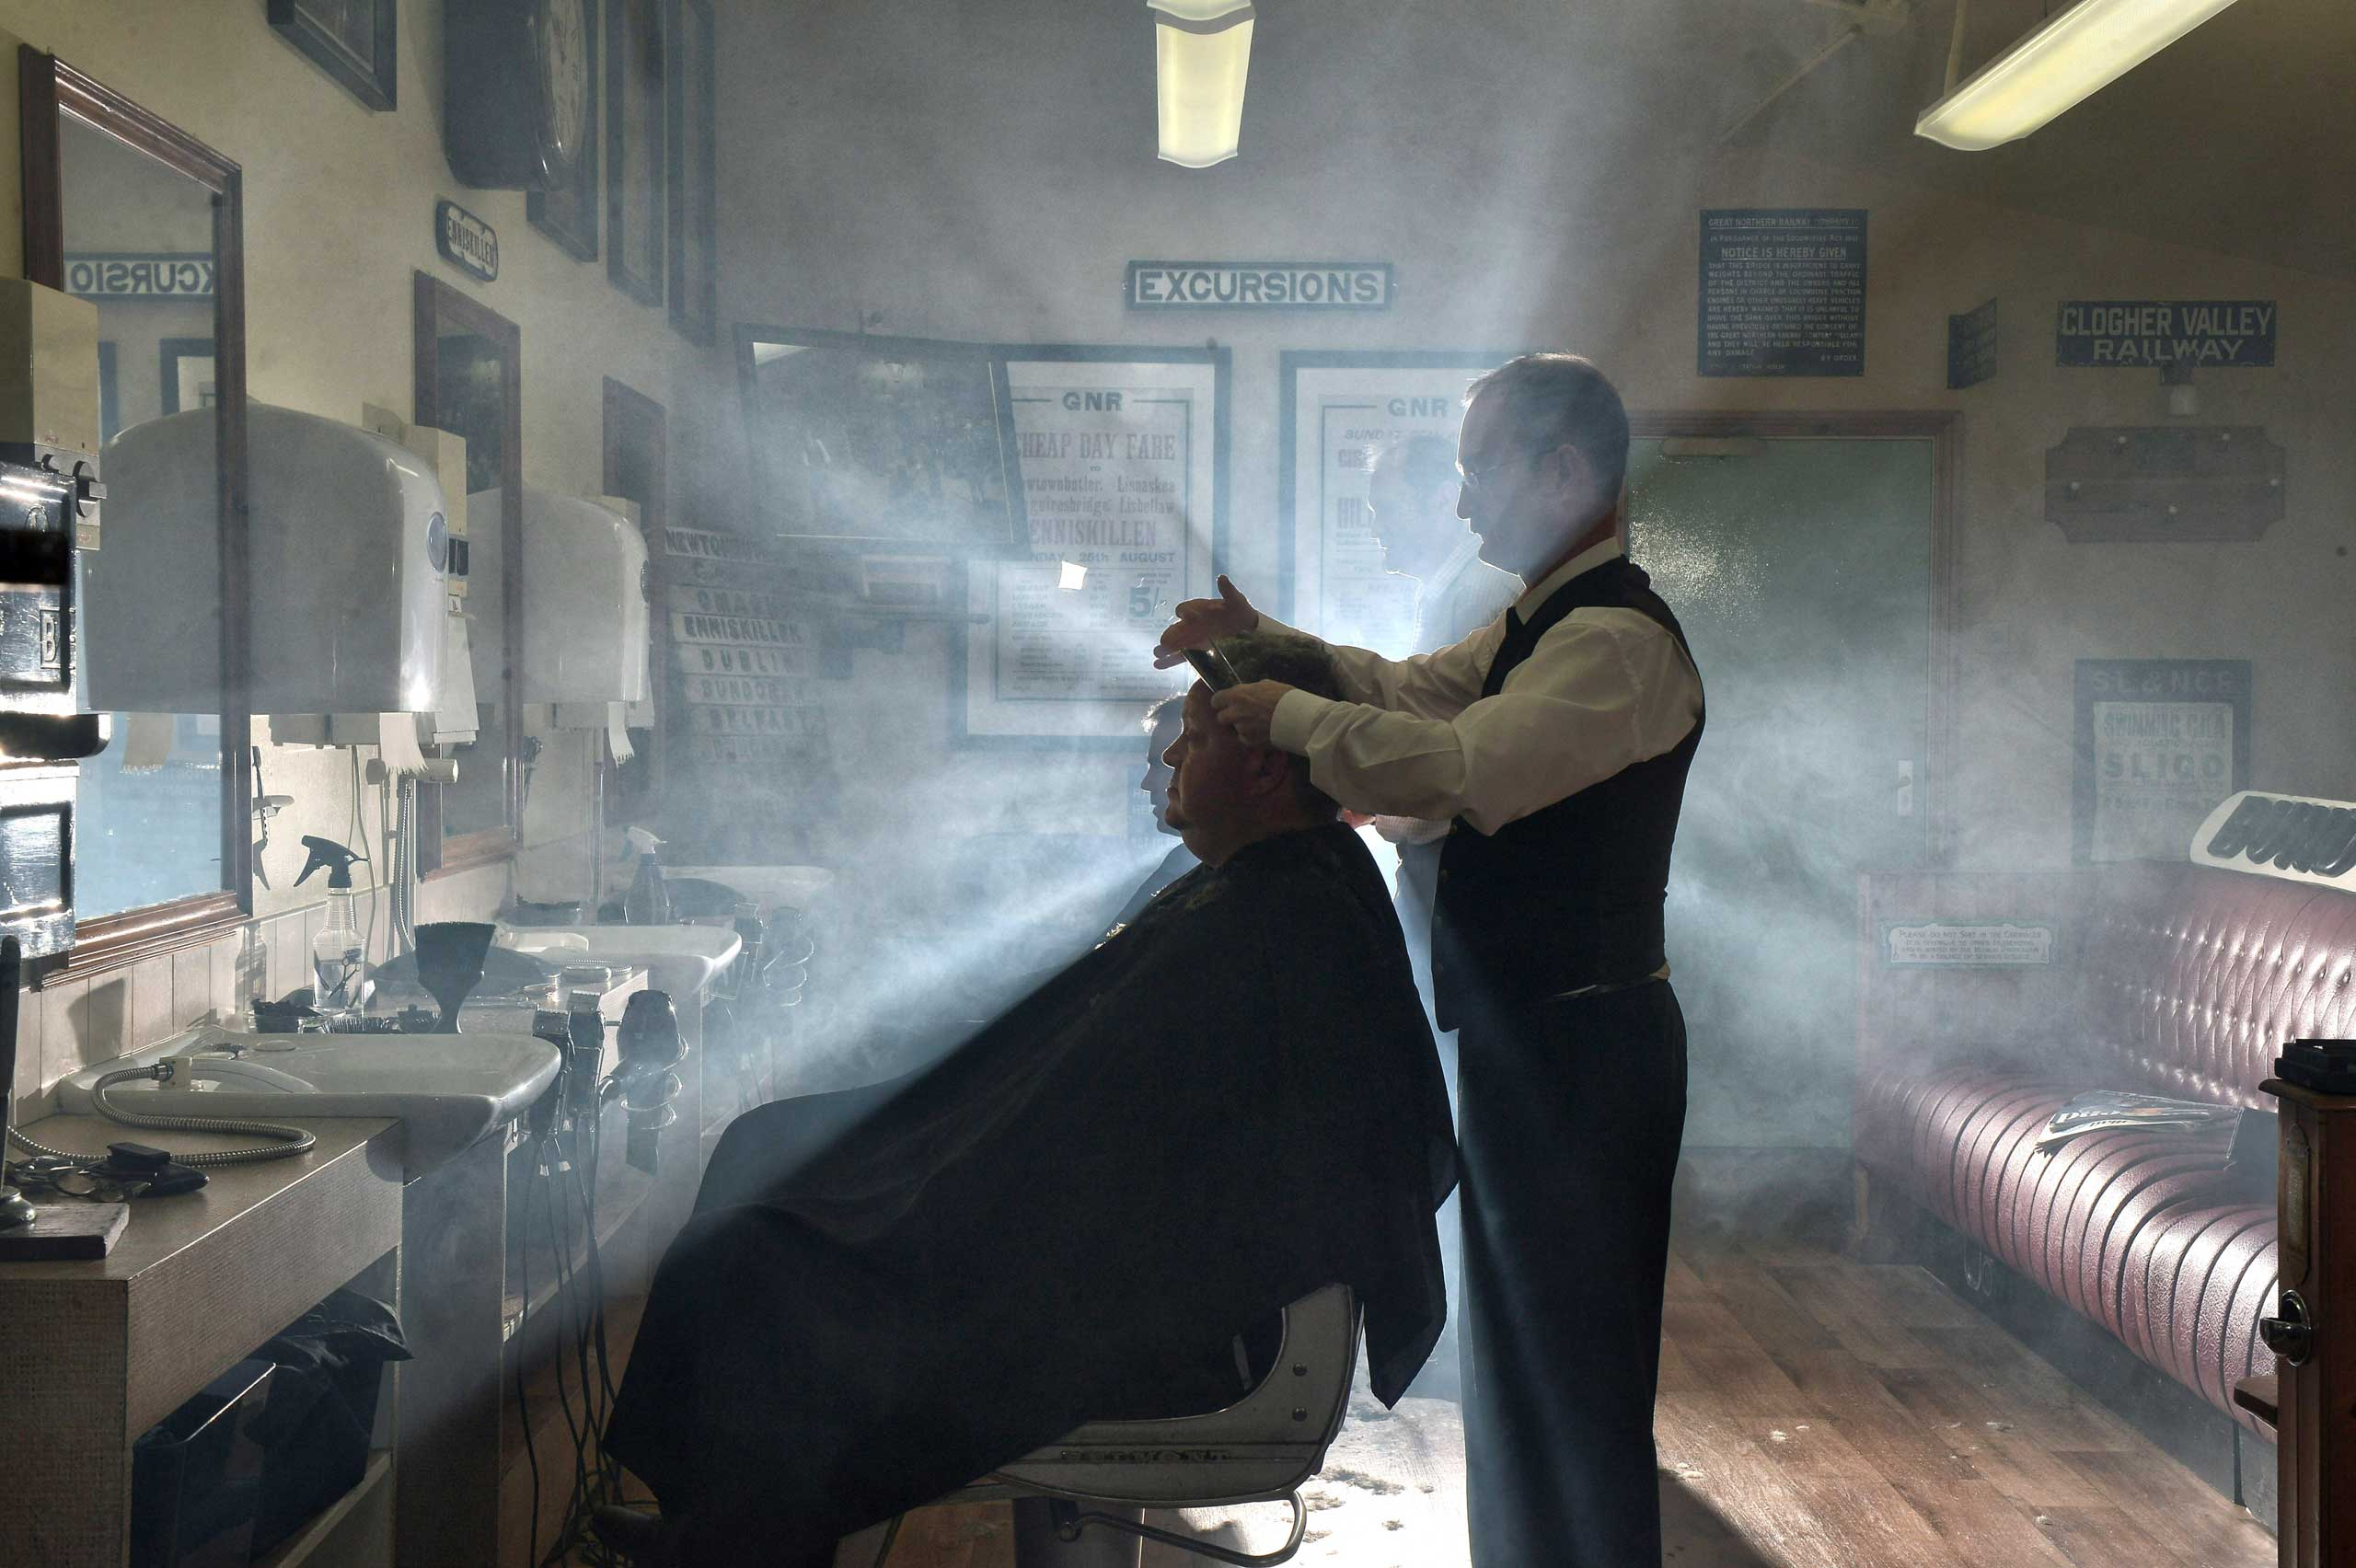 Sept. 29, 2014. A customer of the Headhunters Barber Shop and Railway Museum gets a hair and from station master Nigel Johnston in Enniskillen, Northern Ireland. Established in 2002, with the help of former railway employees and enthusiasts, the museum is run by three brothers, Selwyn, Nigel and Gordon Johnston whose purpose whilst operating a busy hairdressing service from within the museum is to collect, preserve, and interpret local railway heritage for the benefit of the community. Visitors and customers both start their journey at the reconstructed Railway Booking Office where the ticket collector invites you to step on board and enjoy the evocative nostalgia and artefacts associated with the railways which operated throughout Fermanagh and the Border Counties until their closure in 1957.